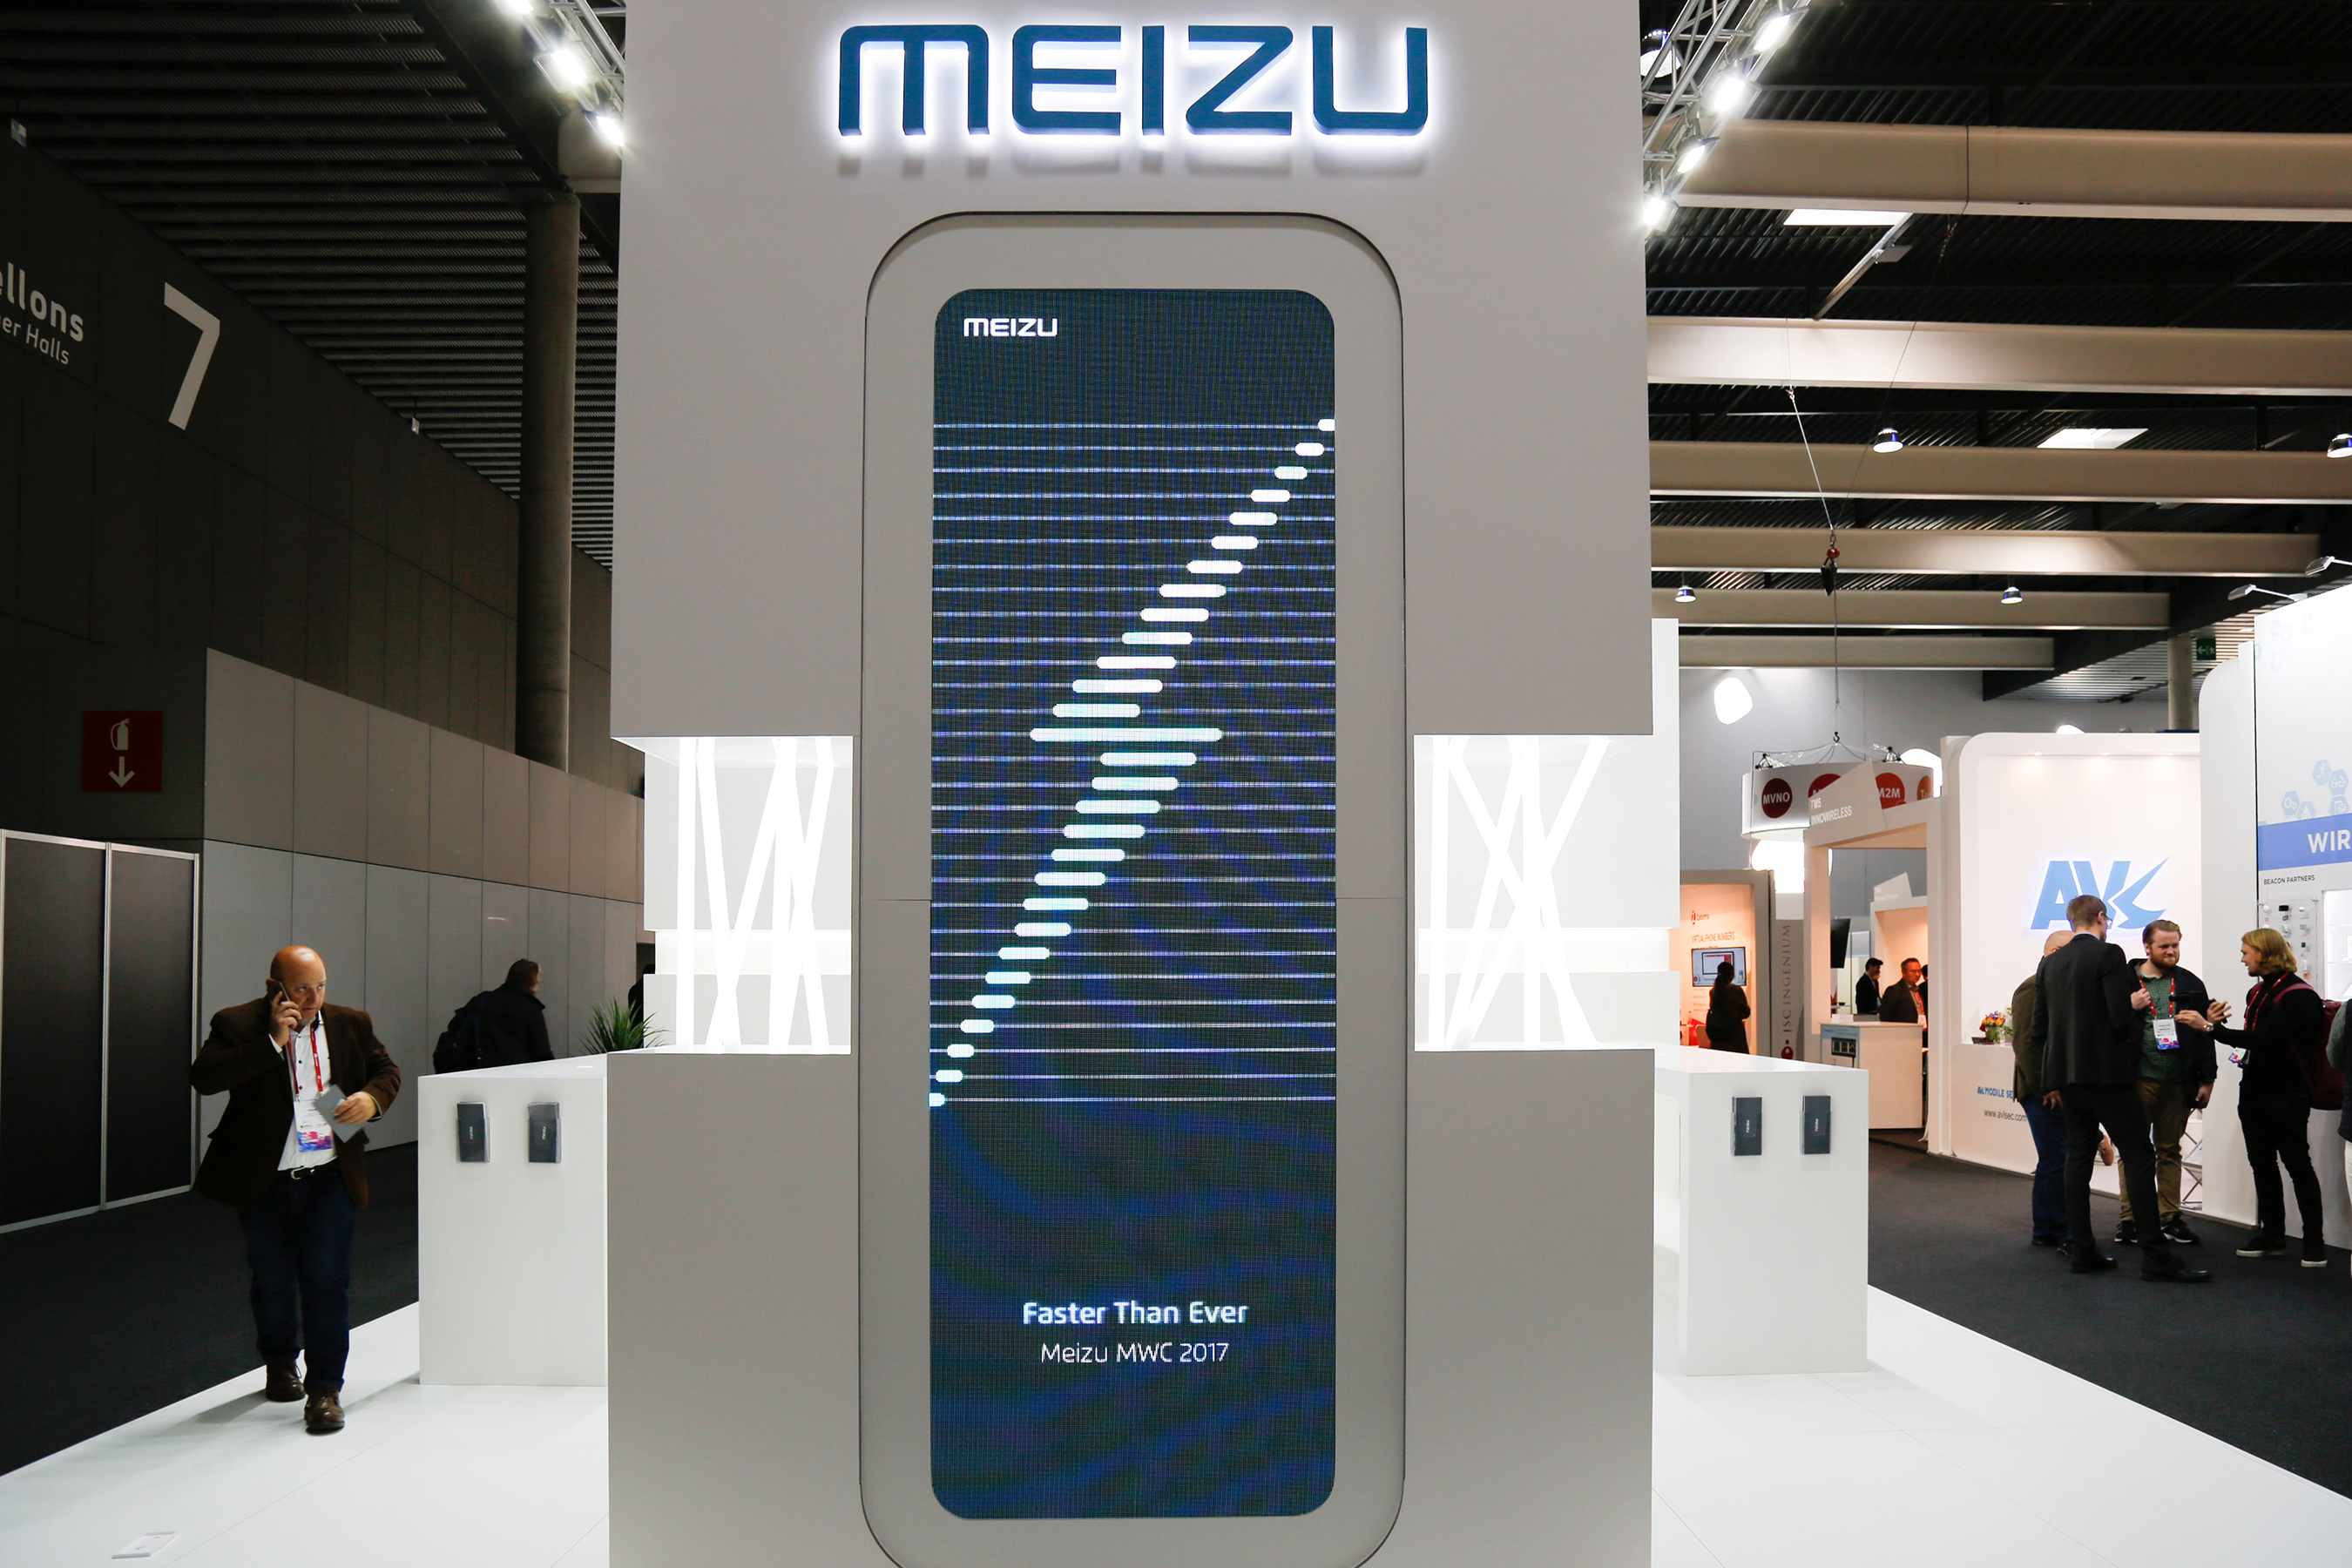 Meizu at MWC 2017: Faster than Ever